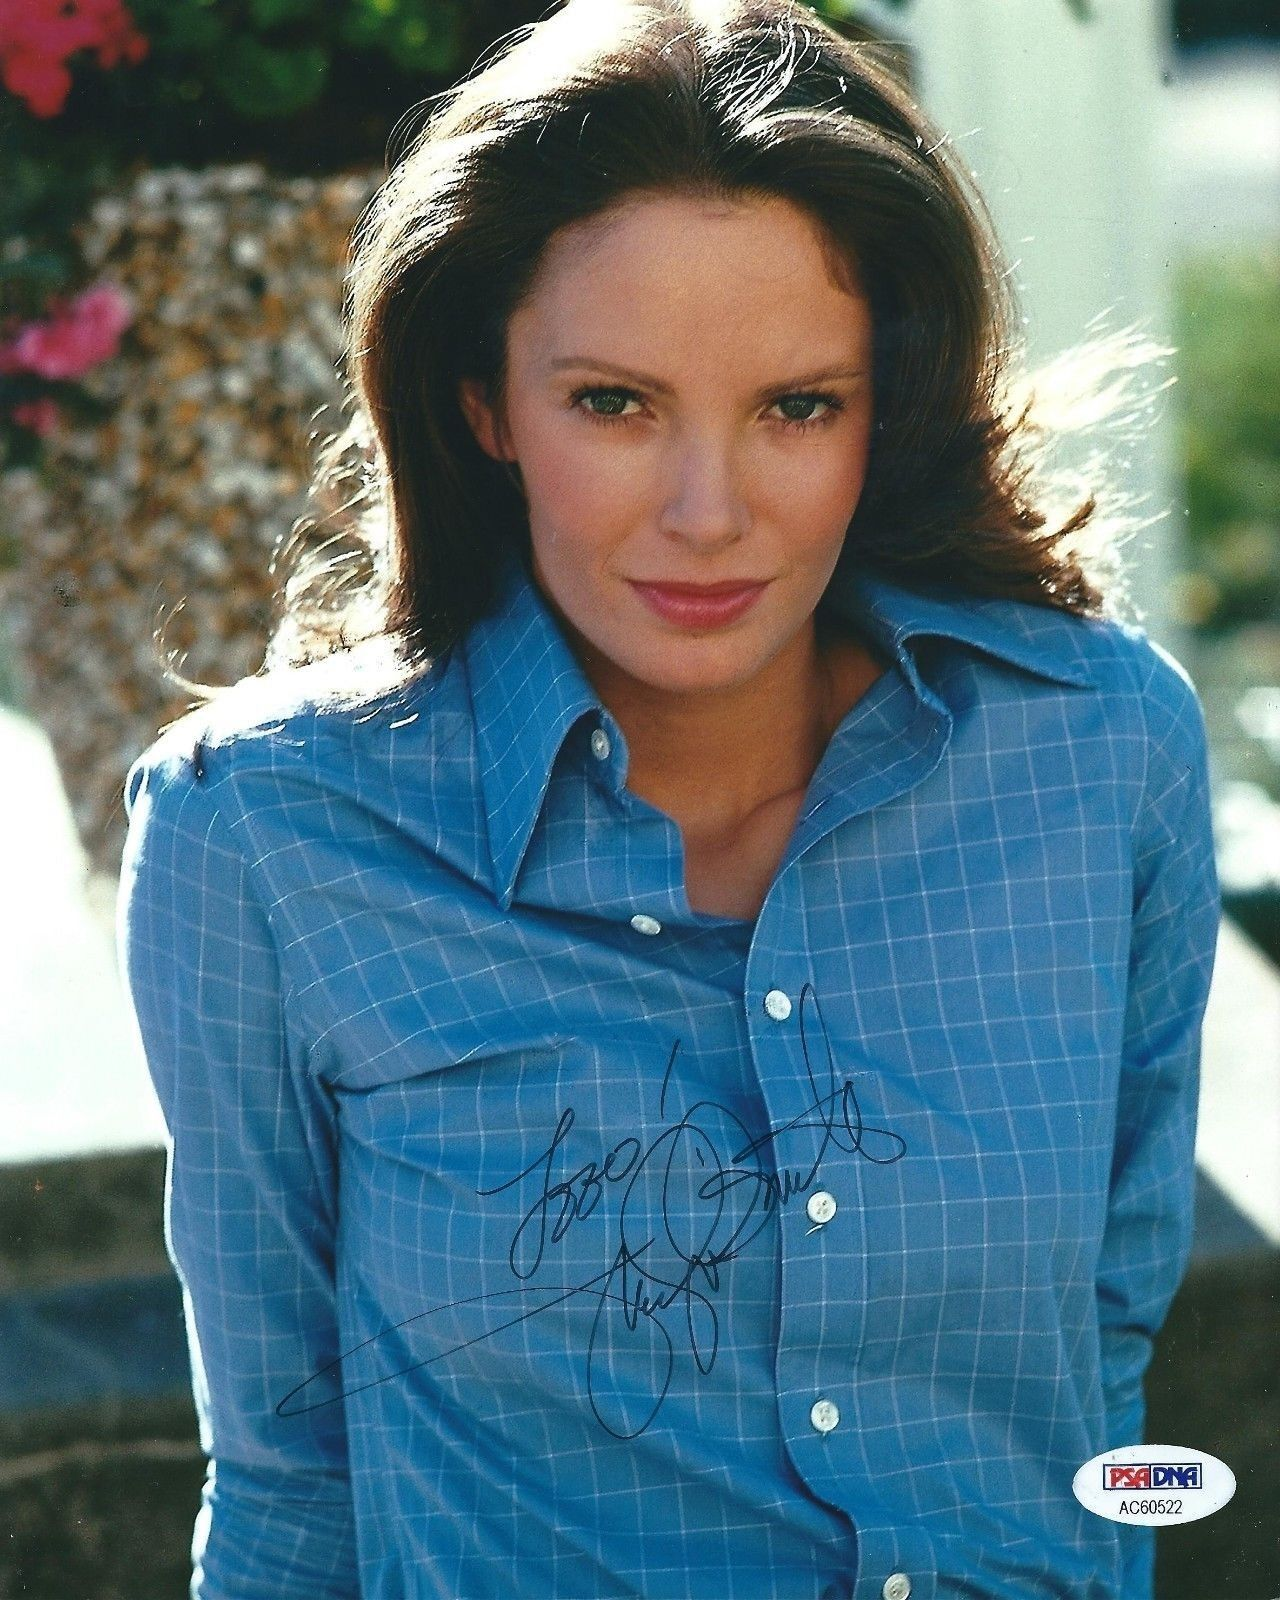 Jaclyn Smith Signed Charlie's Angels 8x10 Photo *Actress PSA/DNA AC60522